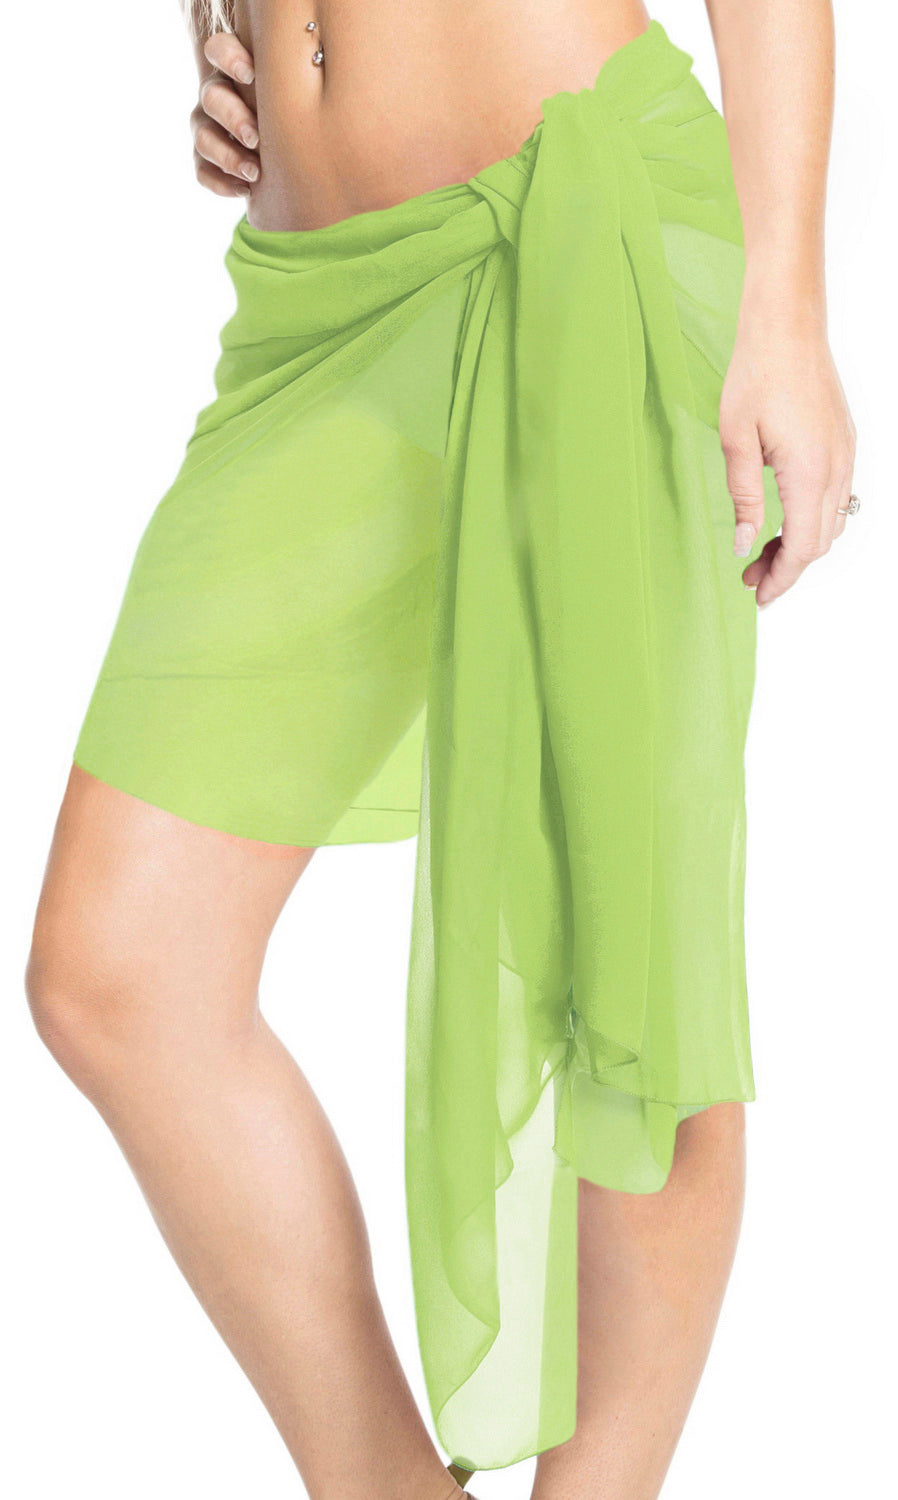 la-leela-swimwear-sheer-chiffon-casual-pareo-girl-swimsuit-sarong-solid-78x21-light-green_173